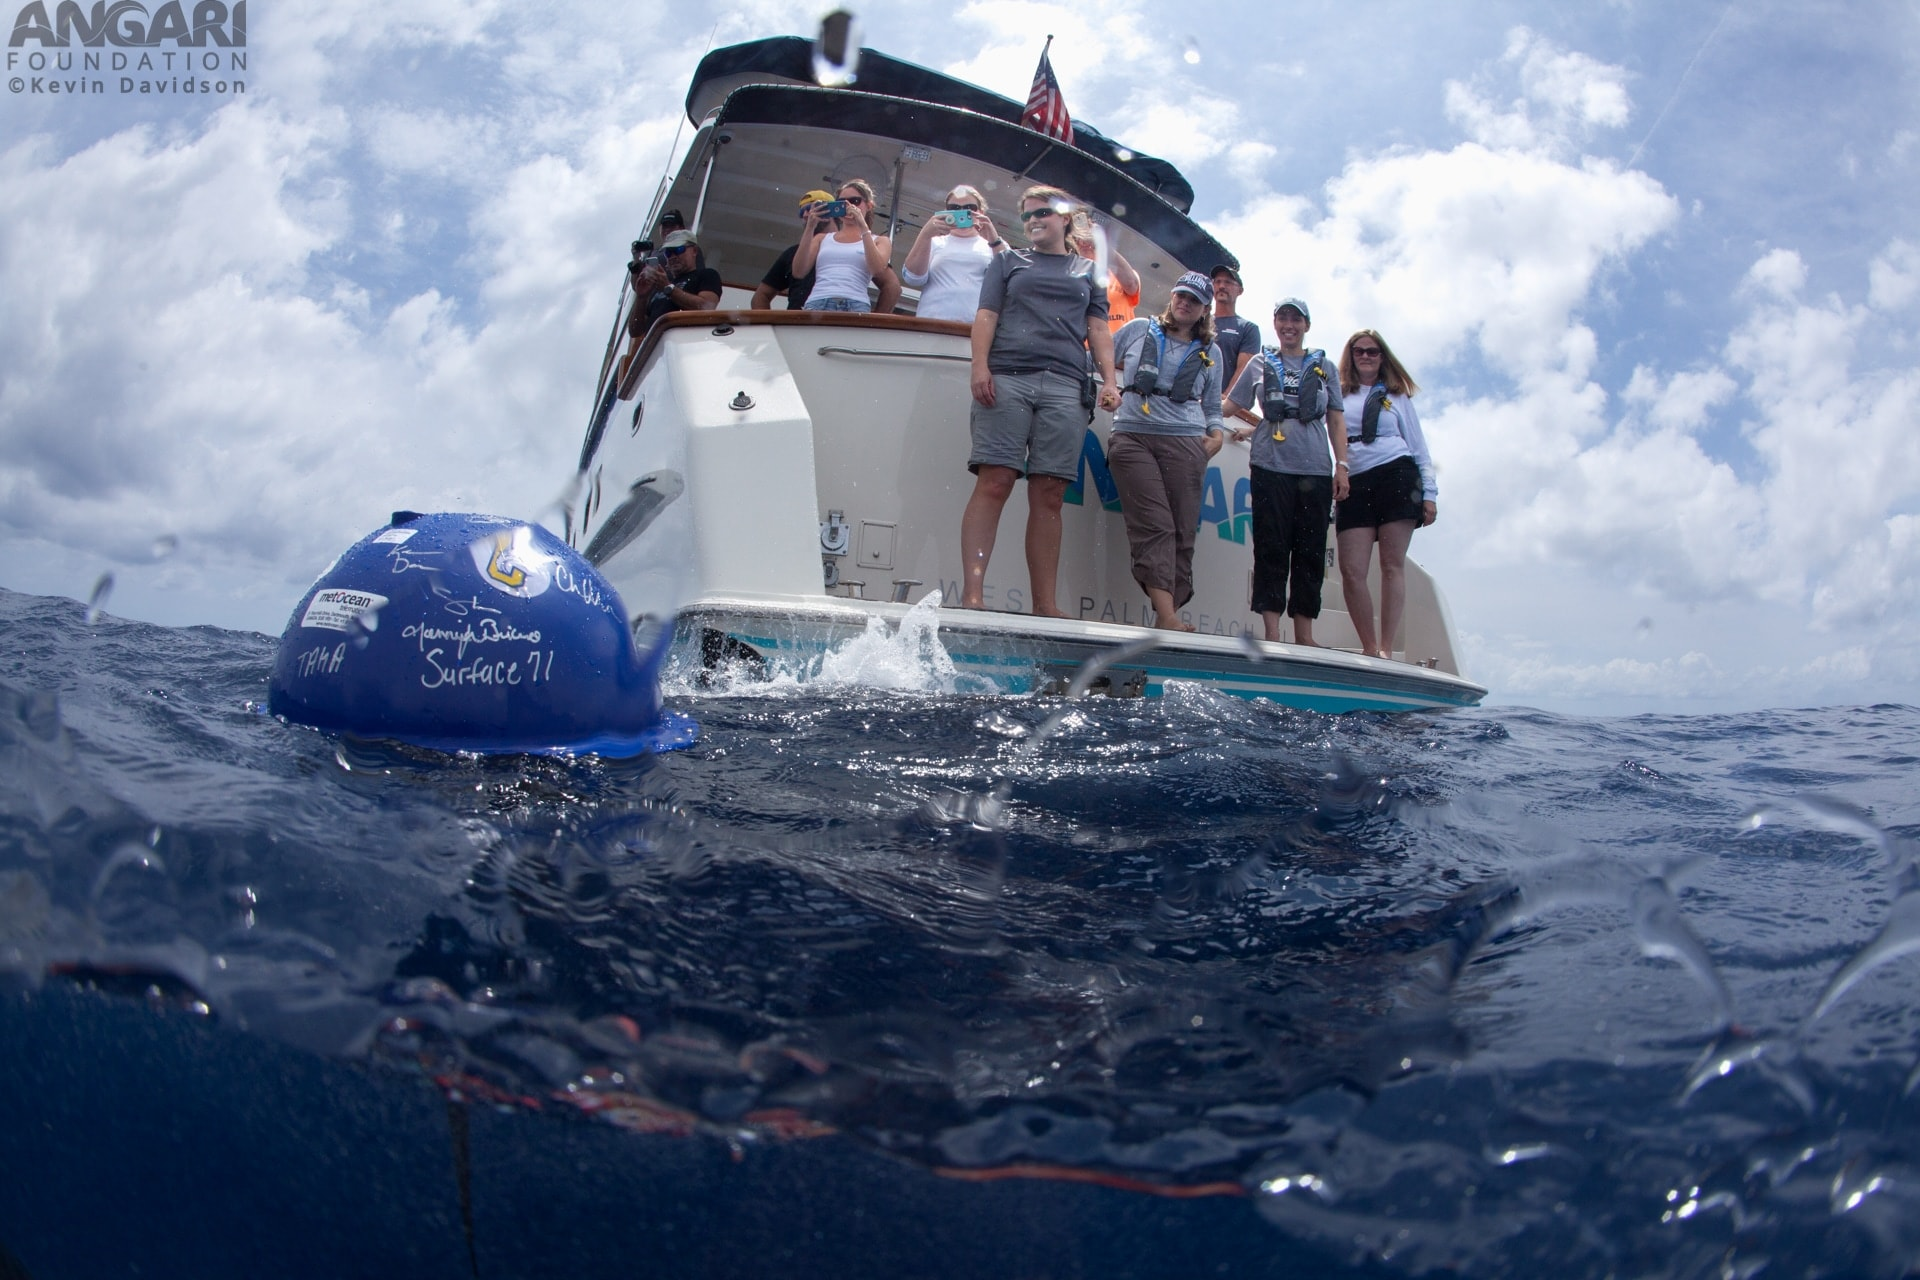 ANGARI Foundation Works With CARTHE And MetOcean Telematics To Host Its First Educator Professional Development Workshop On Ocean Currents And Drifter Technology